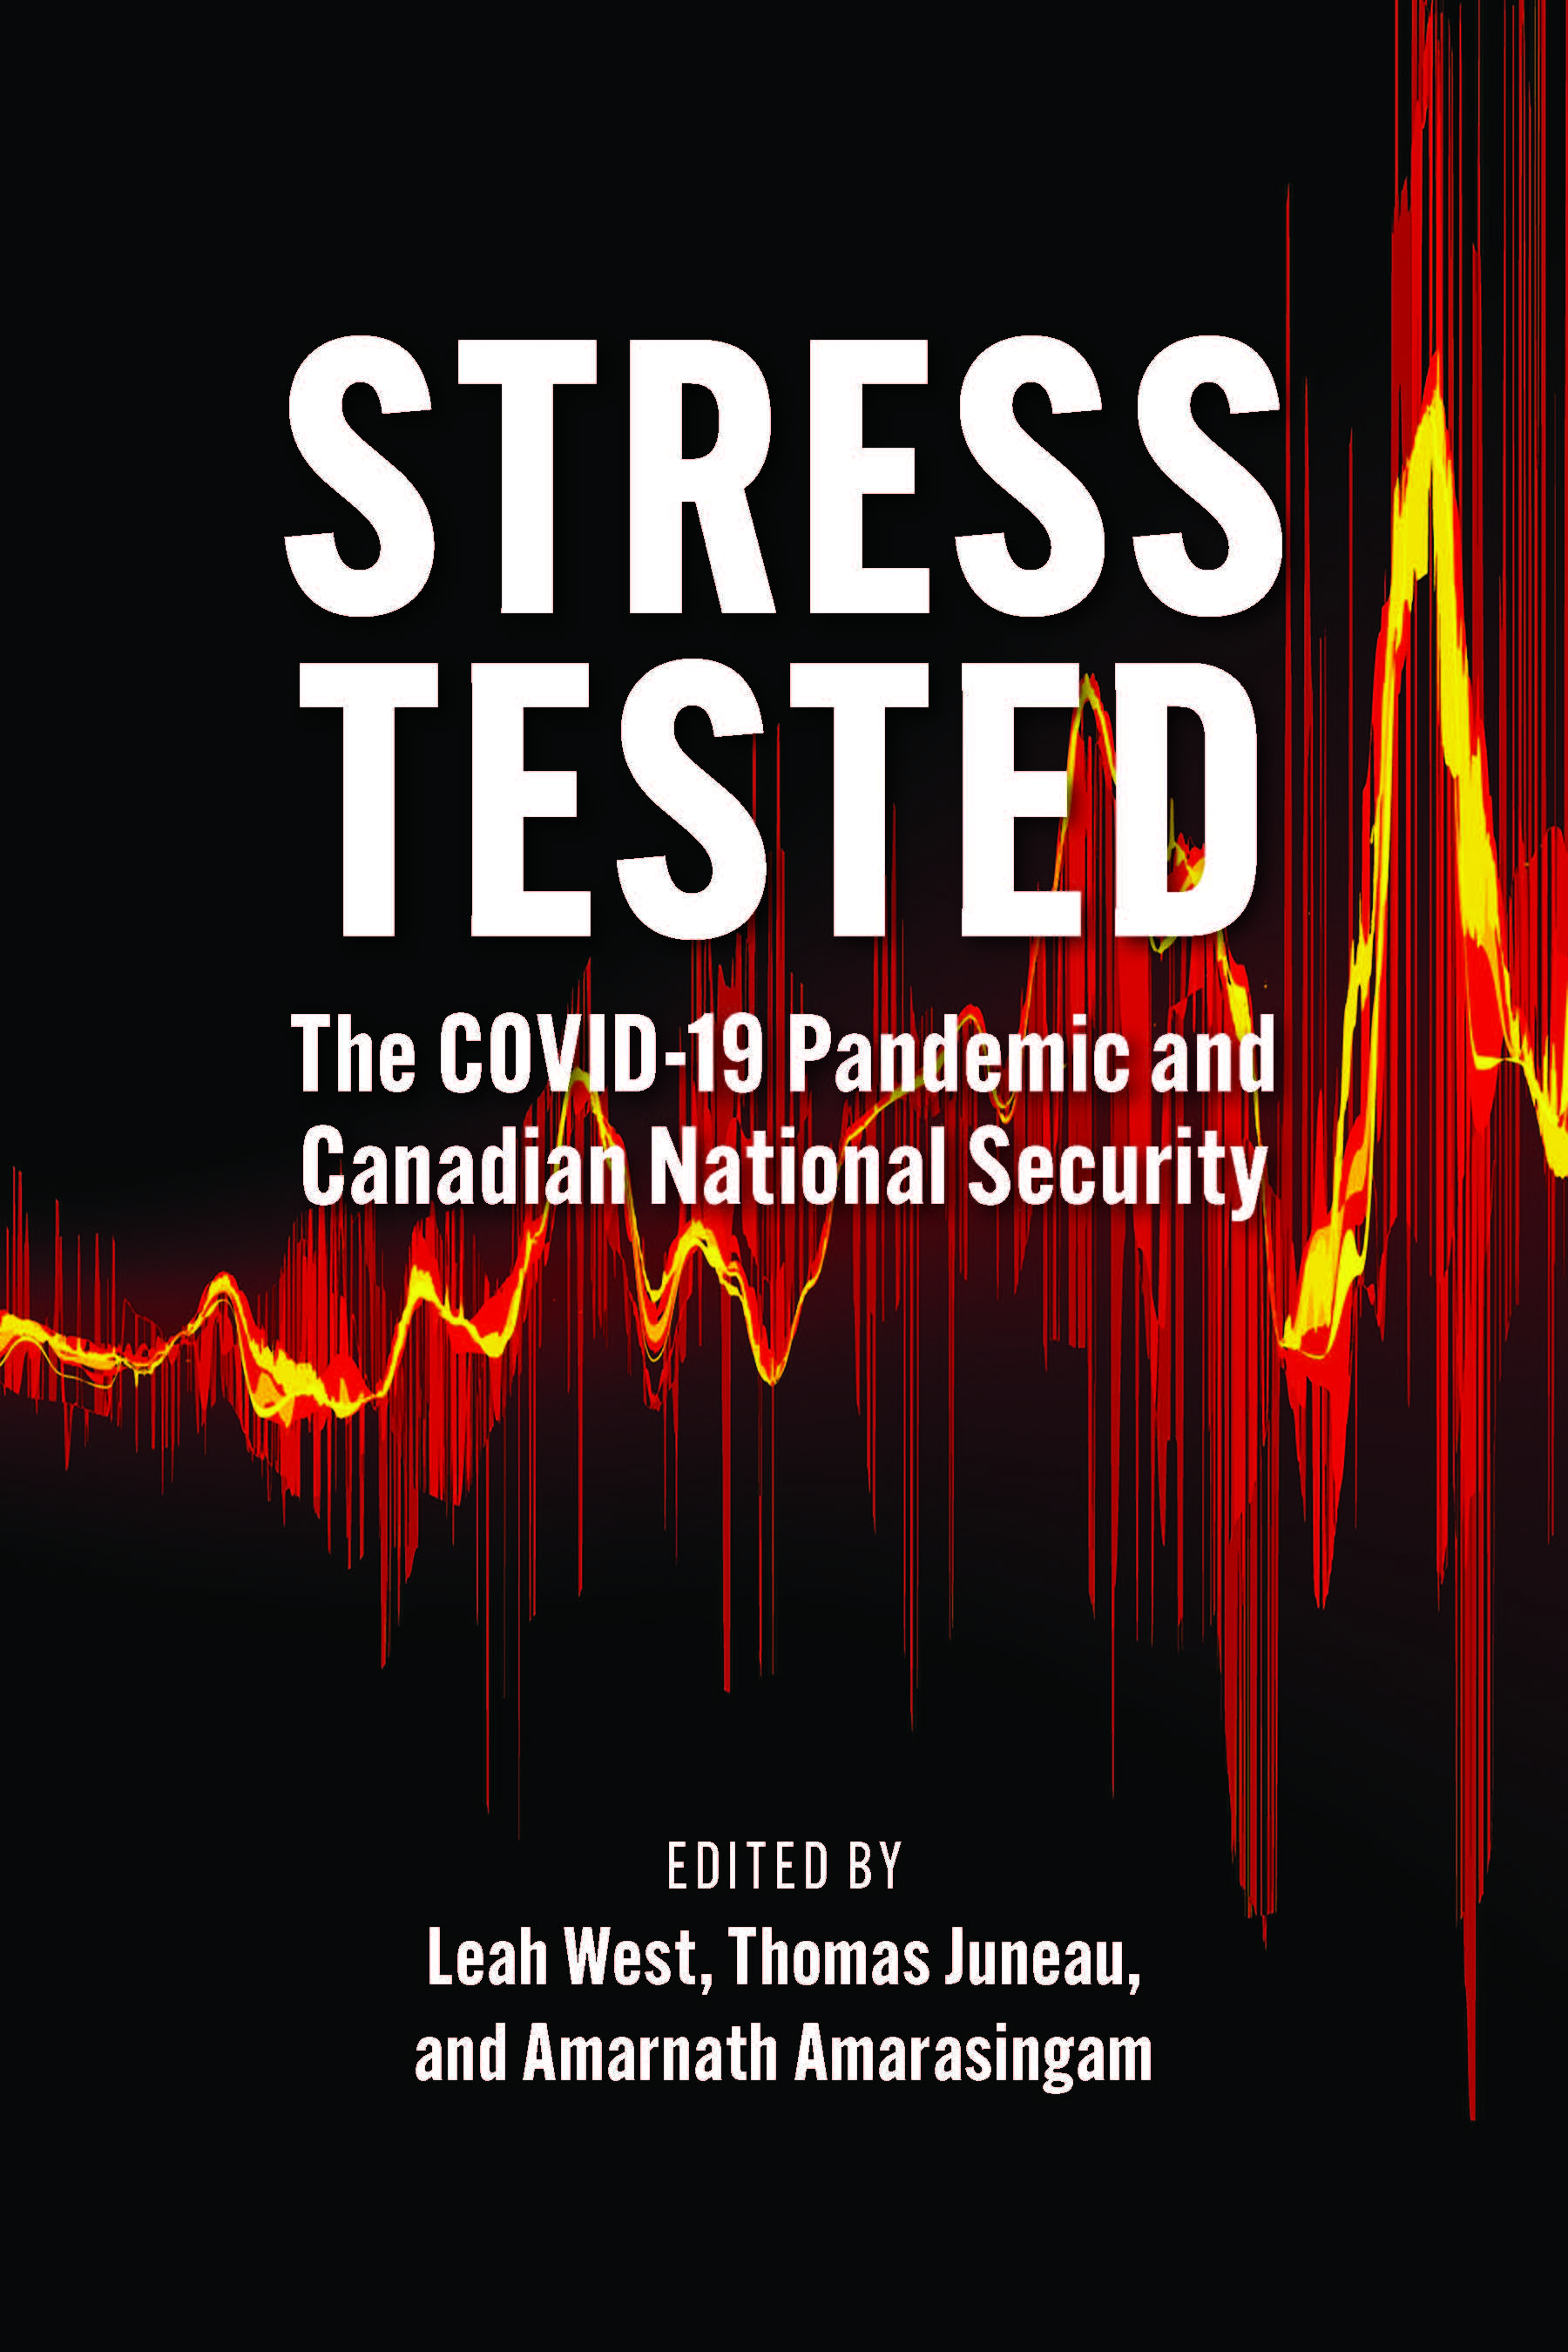 Cover Image for: Stress Tested